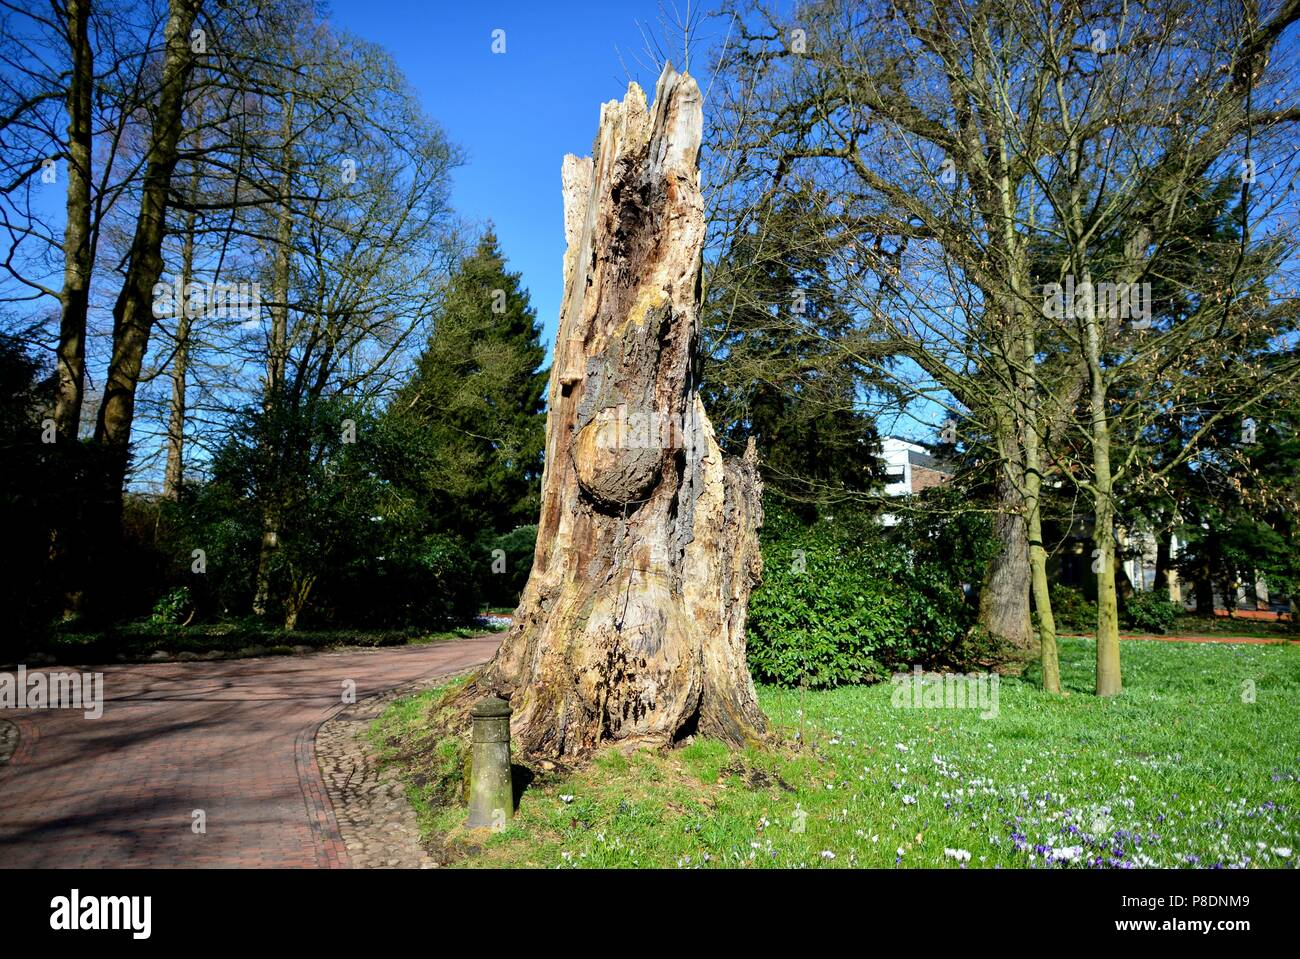 Tree stumpf of a beech at the palace garden in Oldenburg (Germany), 06 April 2018.   usage worldwide Stock Photo